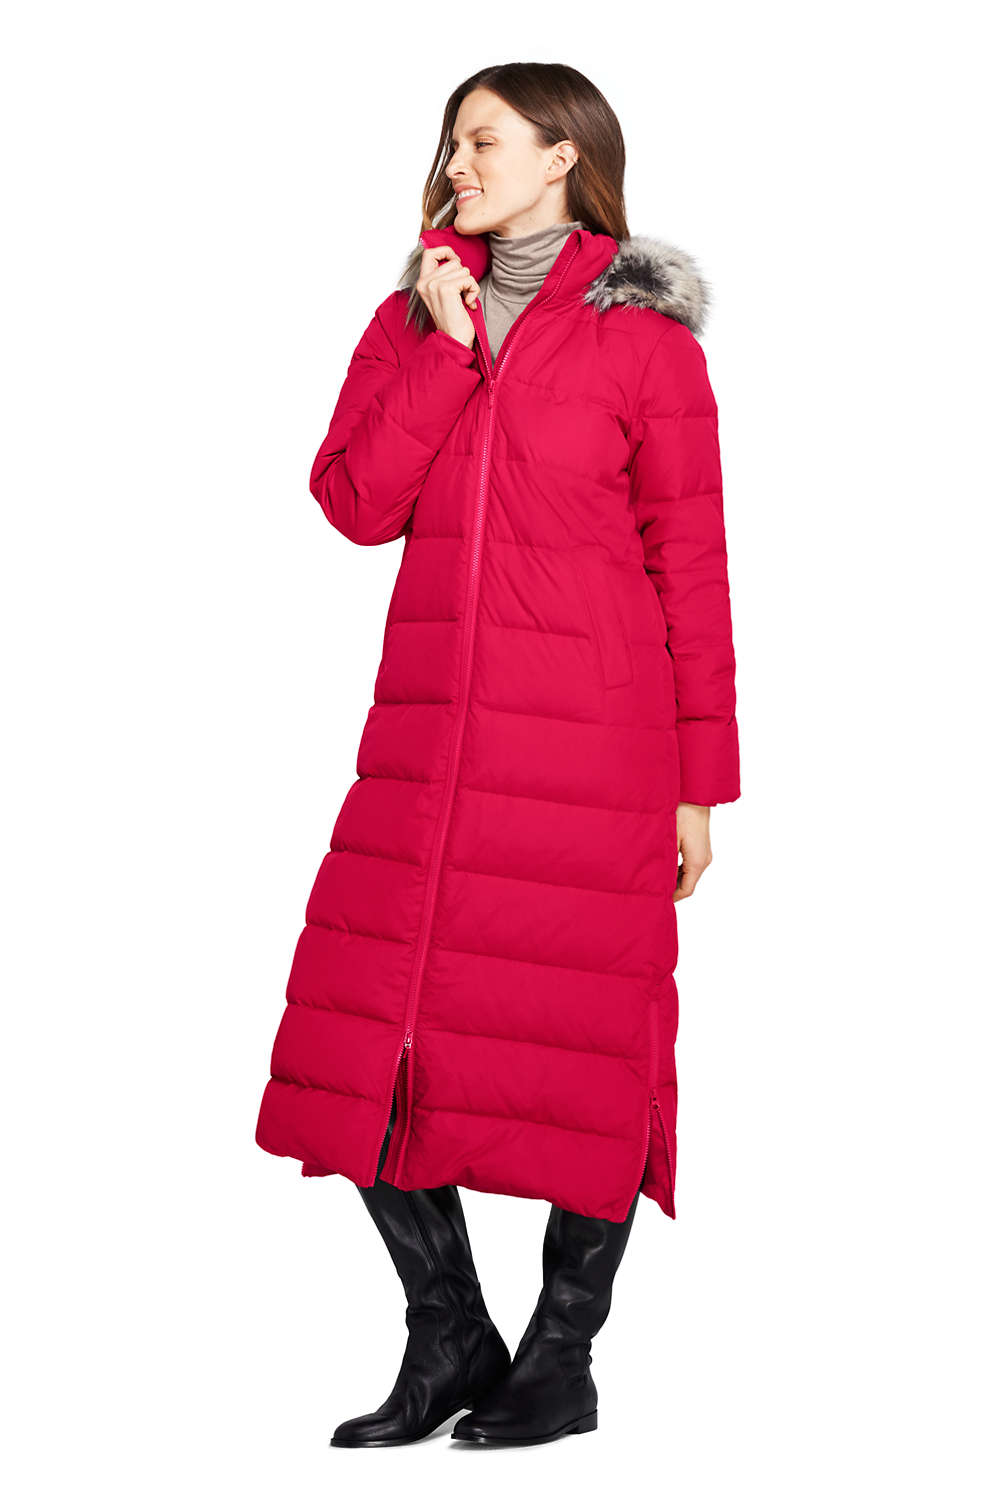 7b2720e3be9 Women s Winter Long Down Coat with Faux Fur Hood from Lands  End